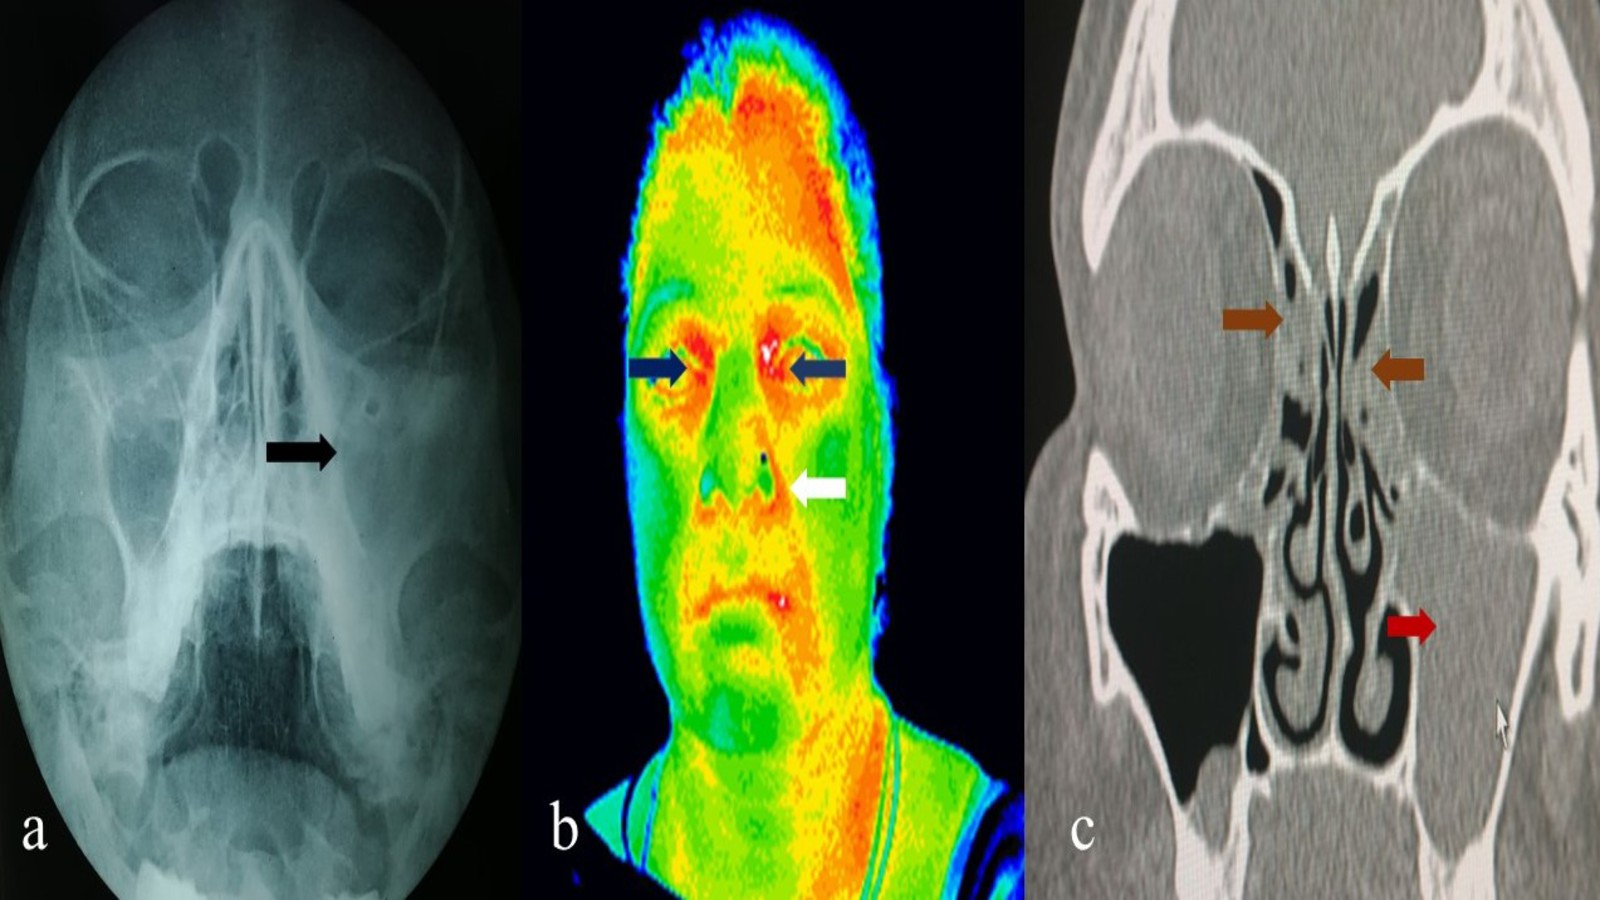 computed tomography and nasal endoscopy in chronic headache Sinonasal inflammation as assessed on computed tomography (ct) scanning, lung function, sputum eosinophilia chronic sinusitis in severe asthma is related to sputum eosinophilia nasal sinus nasal endoscopy was used to assess deformations comprising.